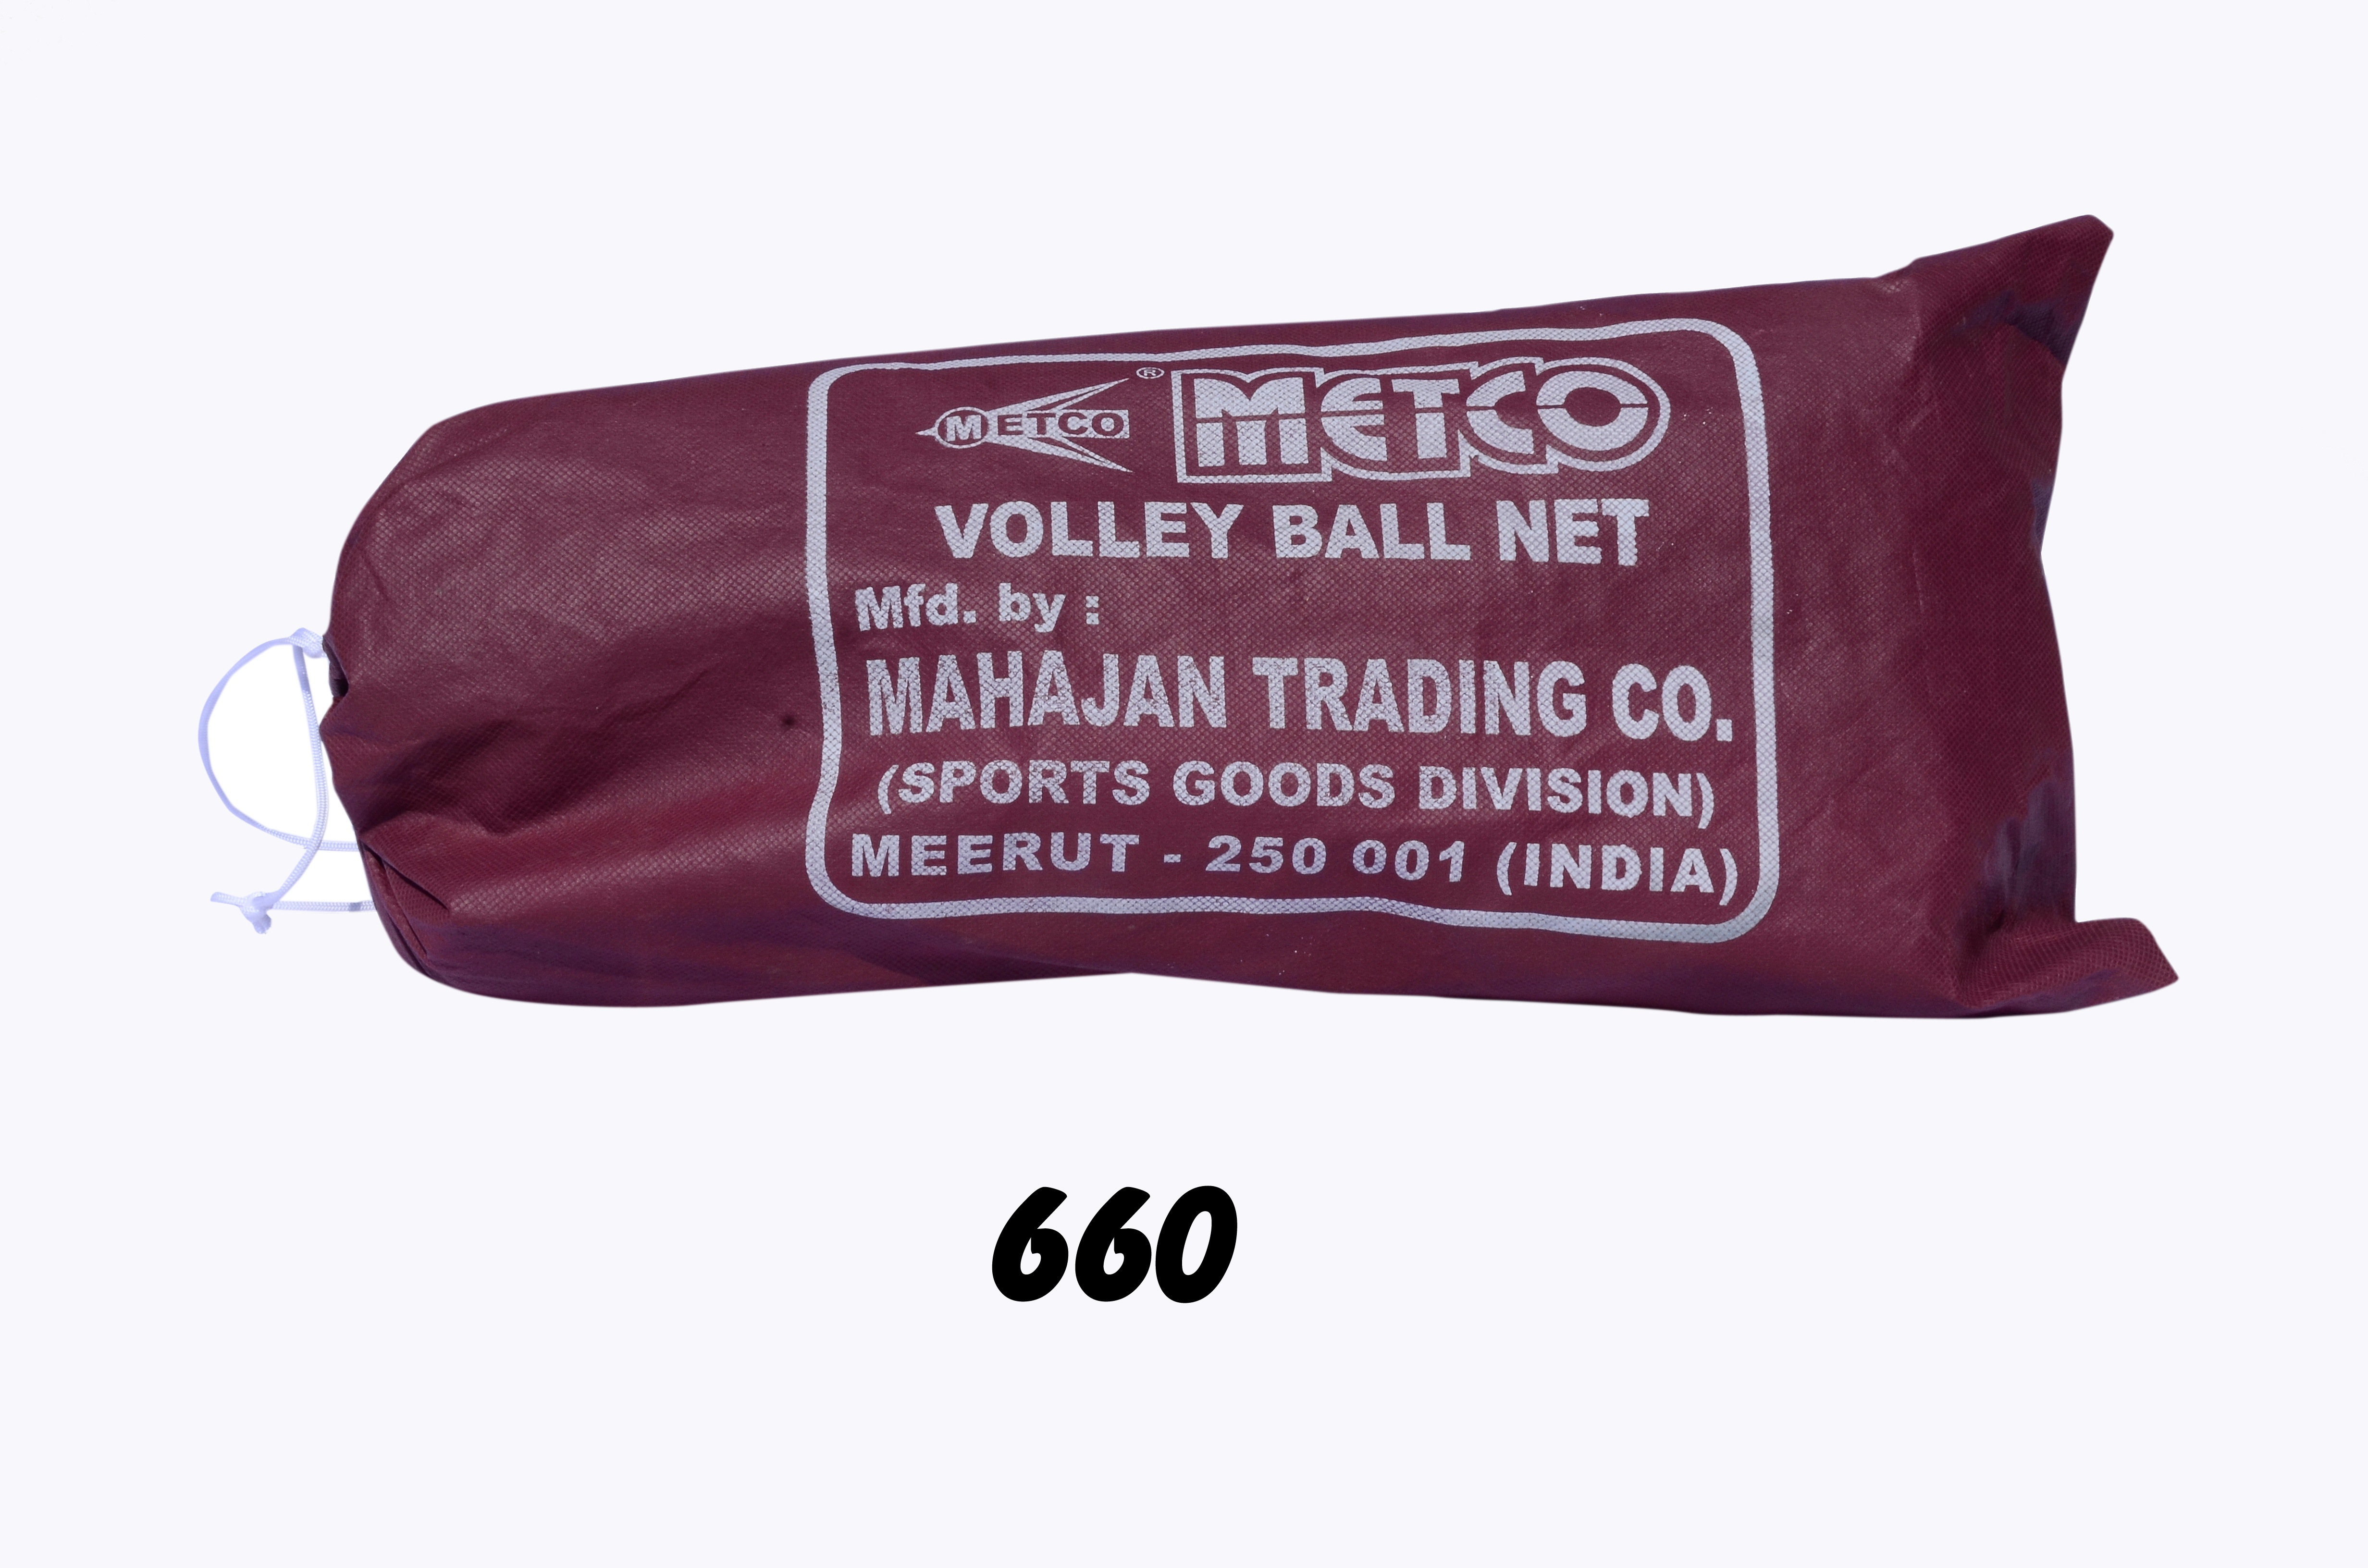 Y.M.C.A. Volleyball Net